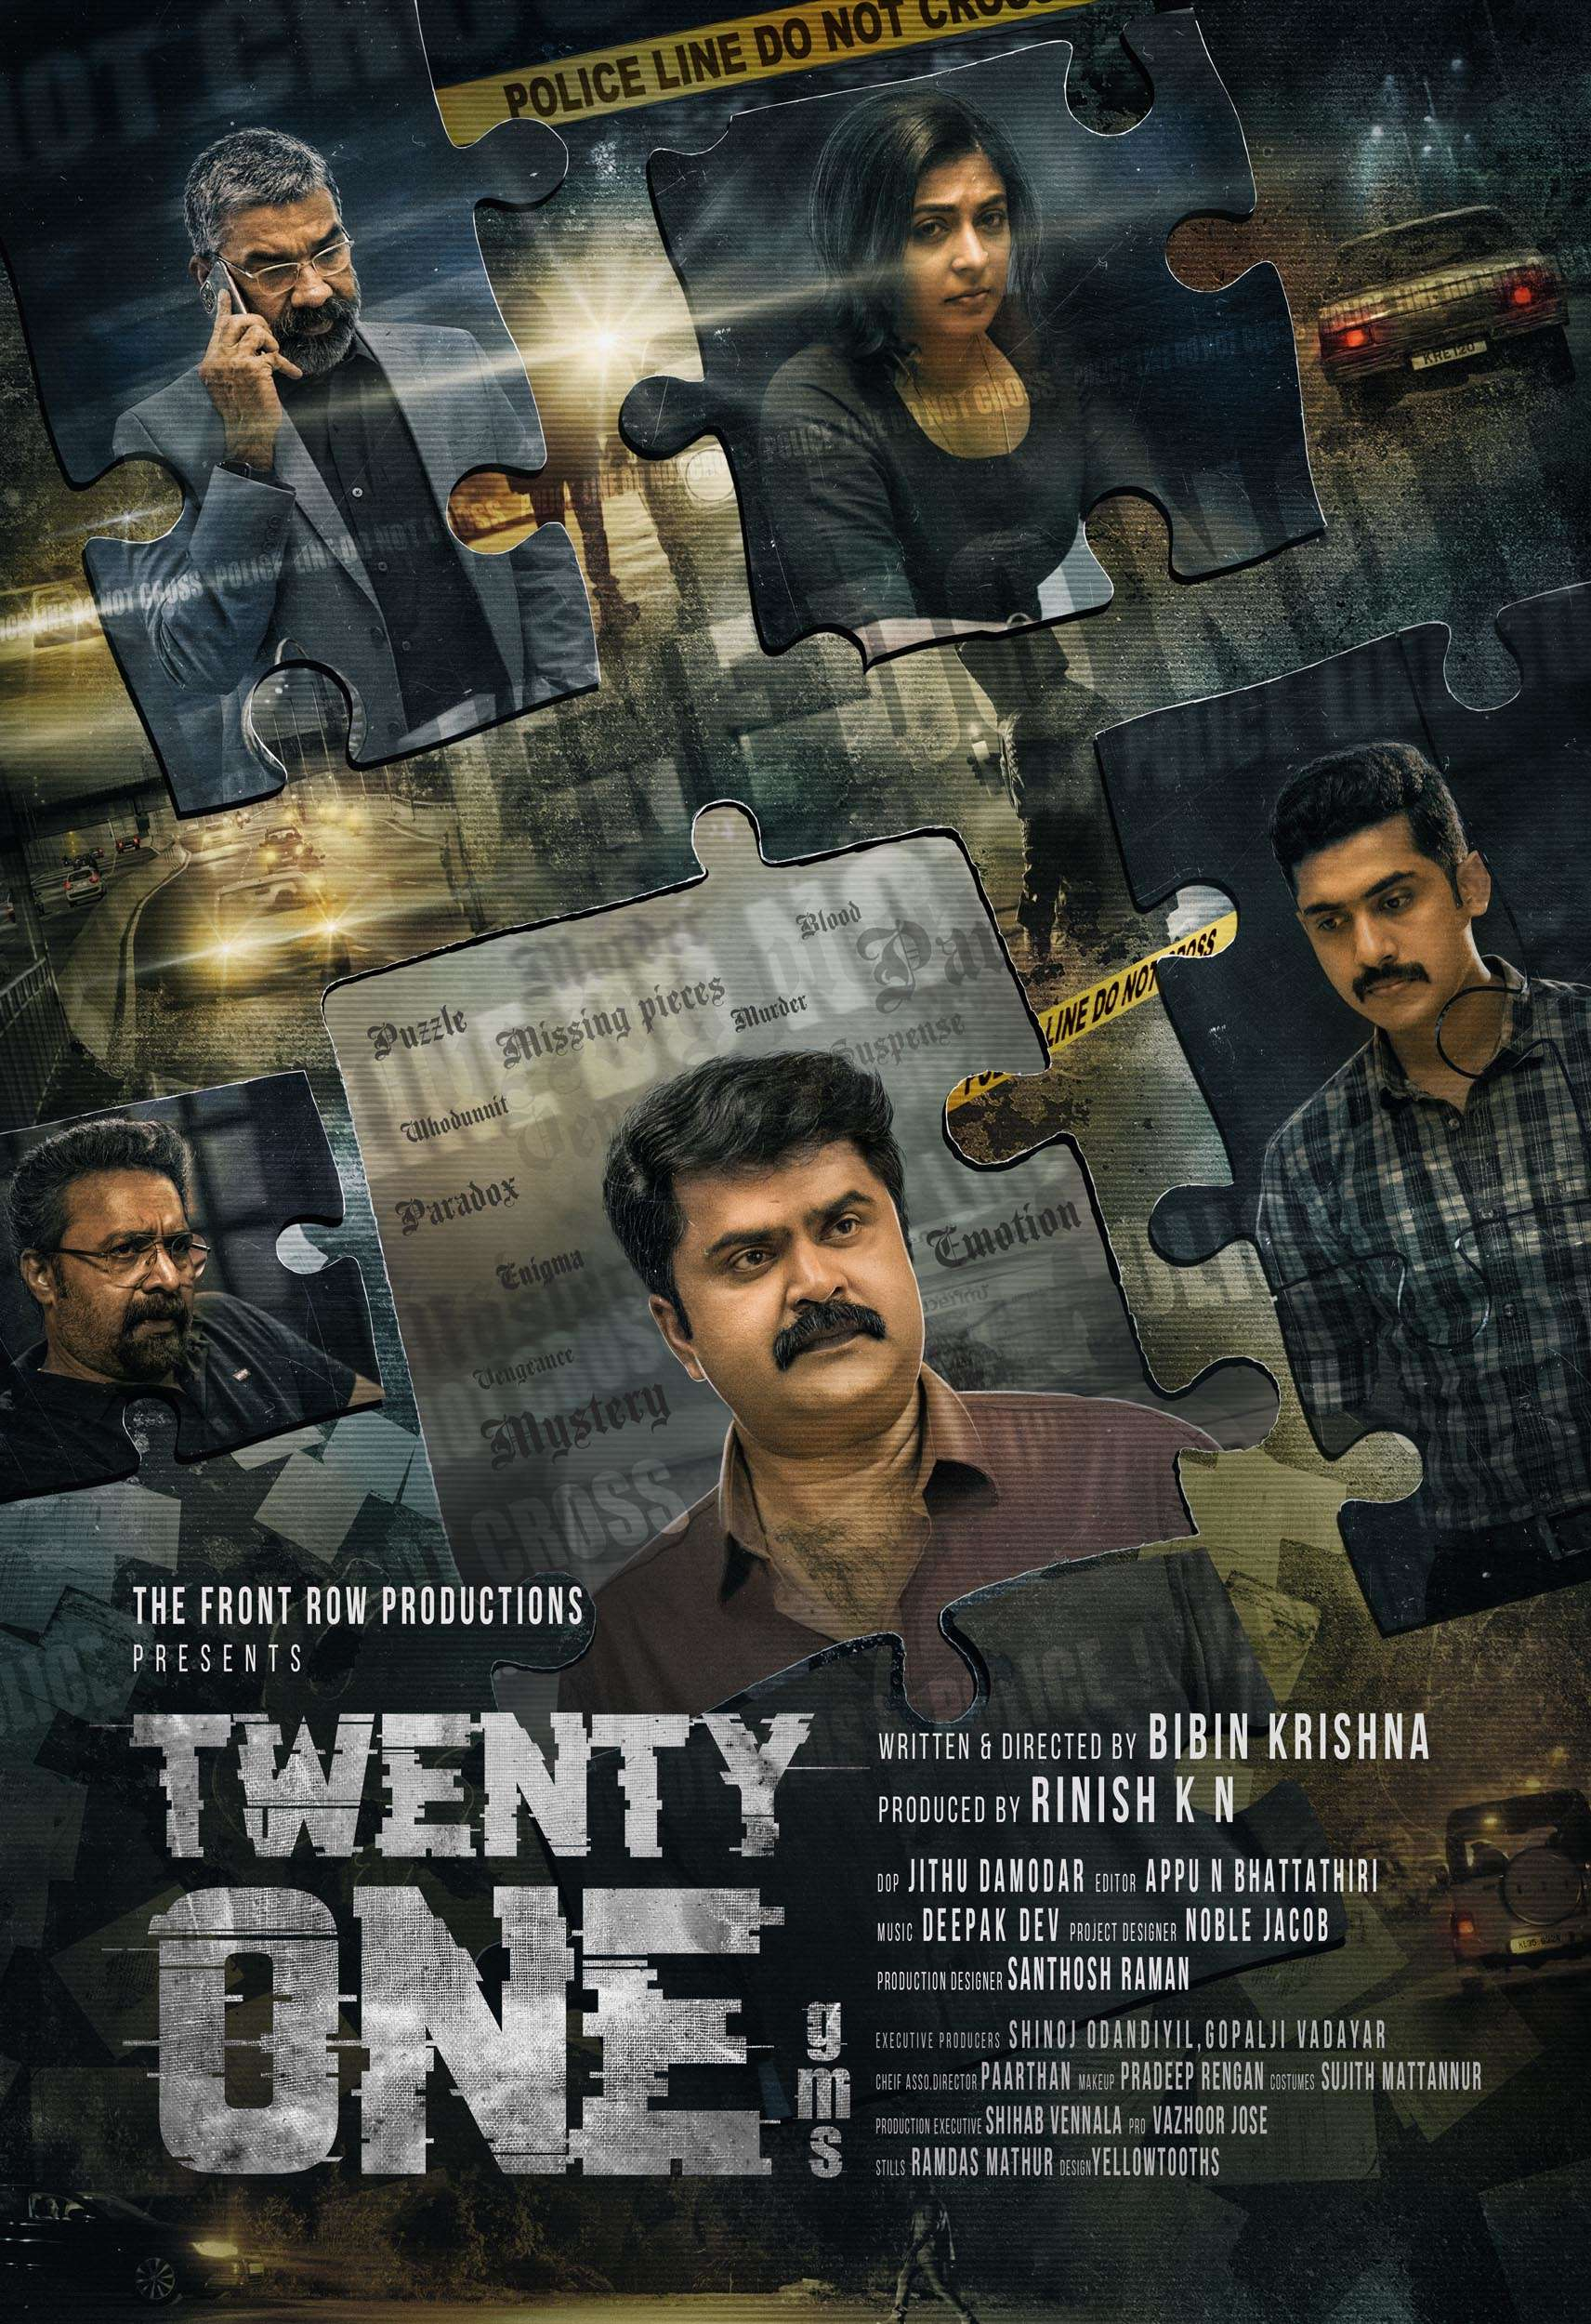 Anoop Menon's investigation thriller film '21 Grams' first look motion  poster is here   Malayalam Movie News - Times of India